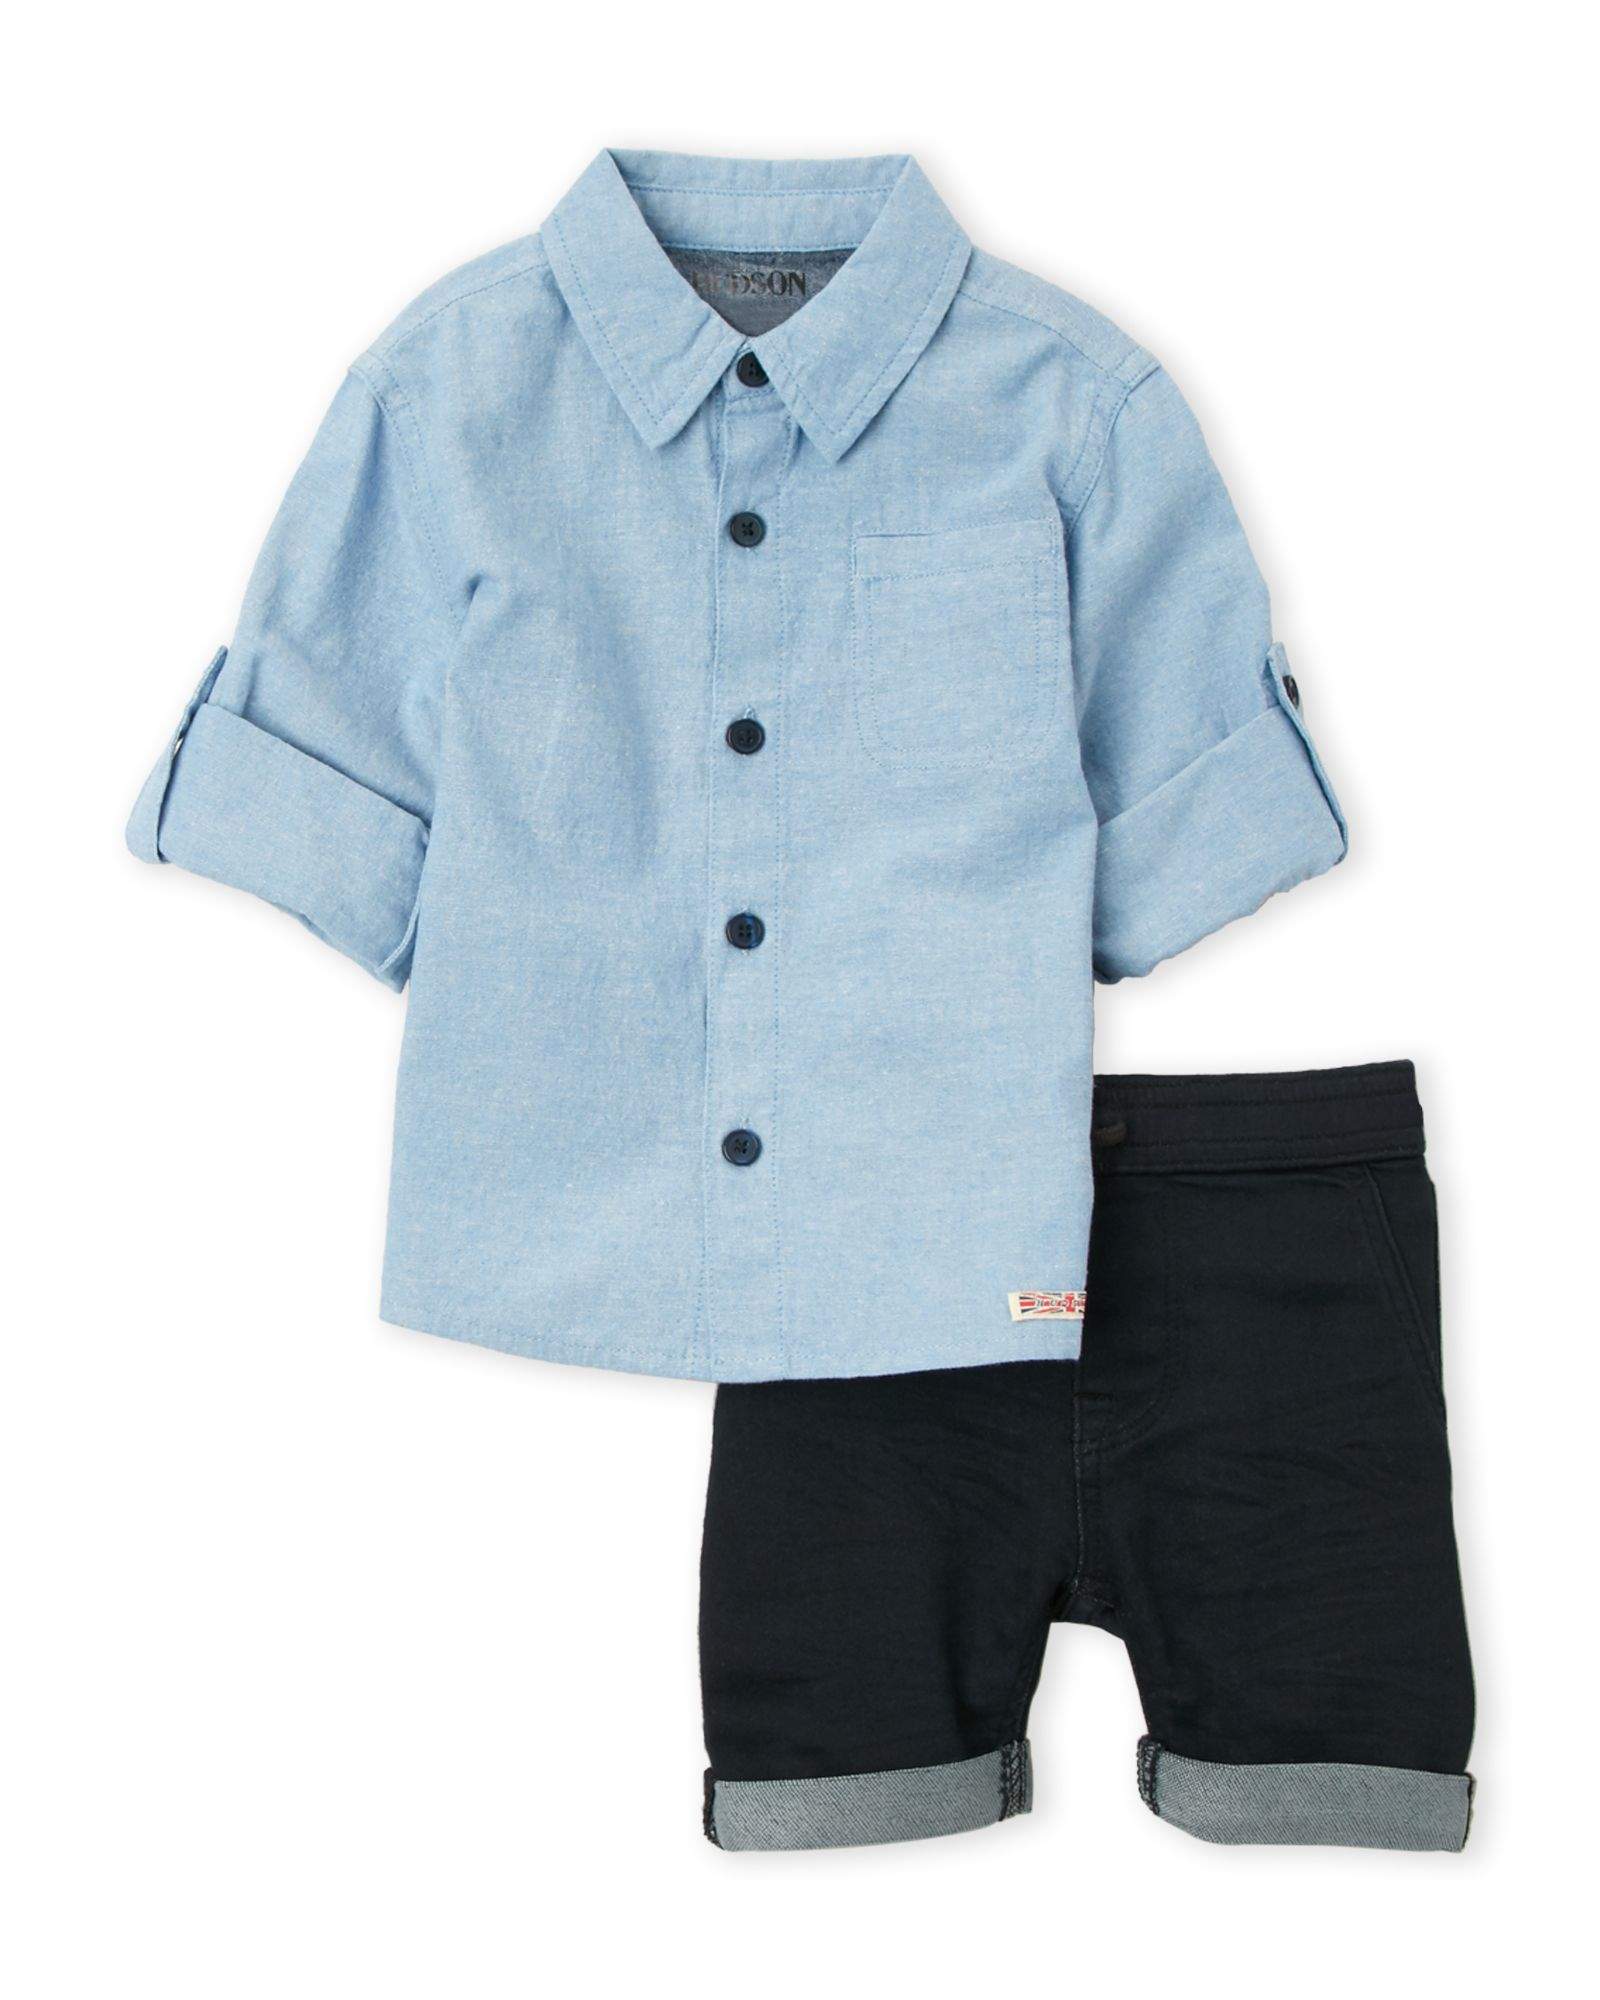 Toddler Boys) Two-Piece Chambray Shirt   Navy Cuffed Shorts Set ... c6d45e5fa0d